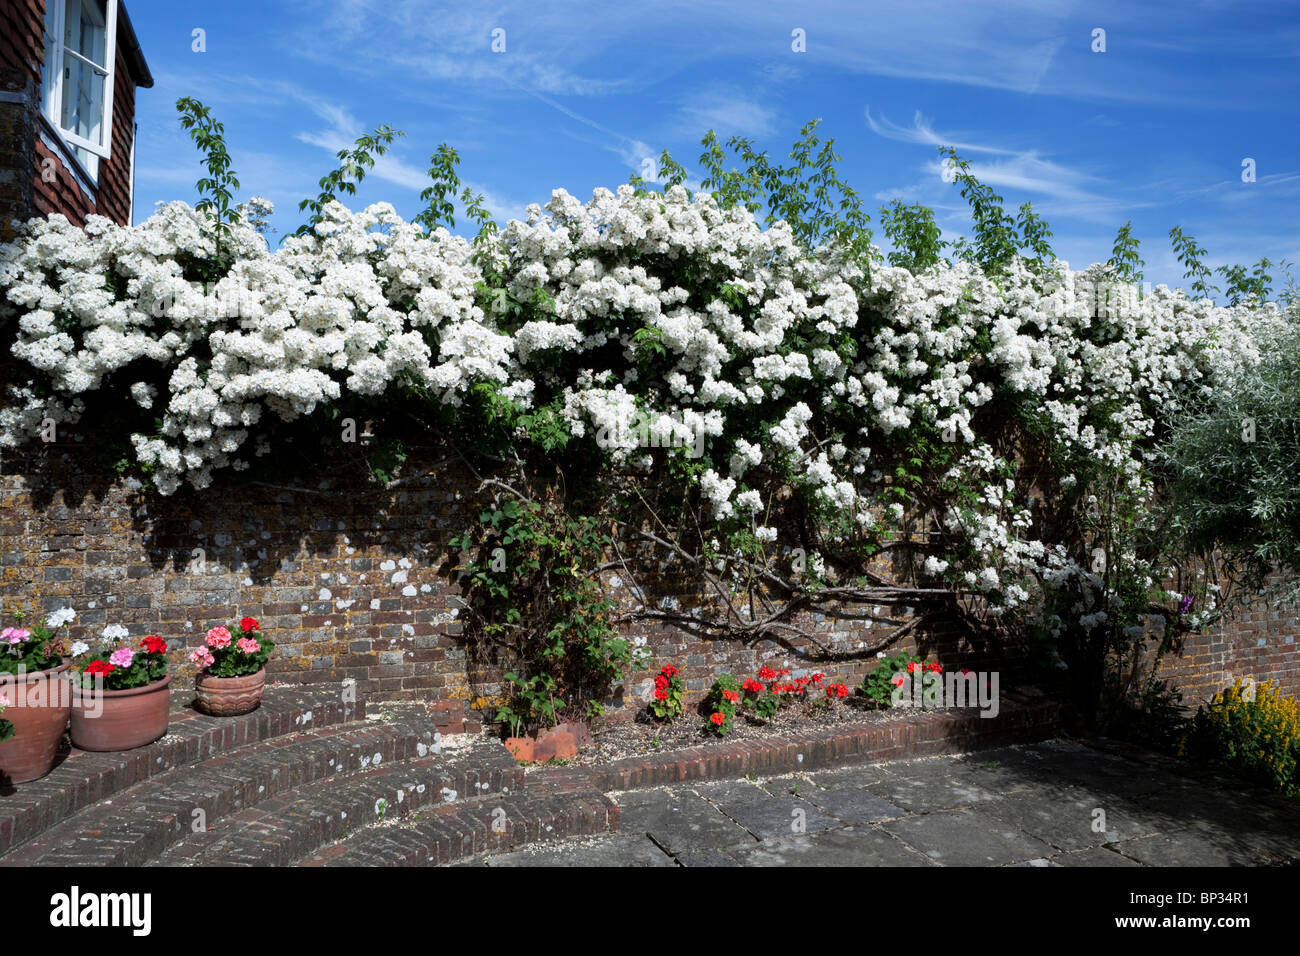 Rambling Rector growing on garden wall - Stock Image